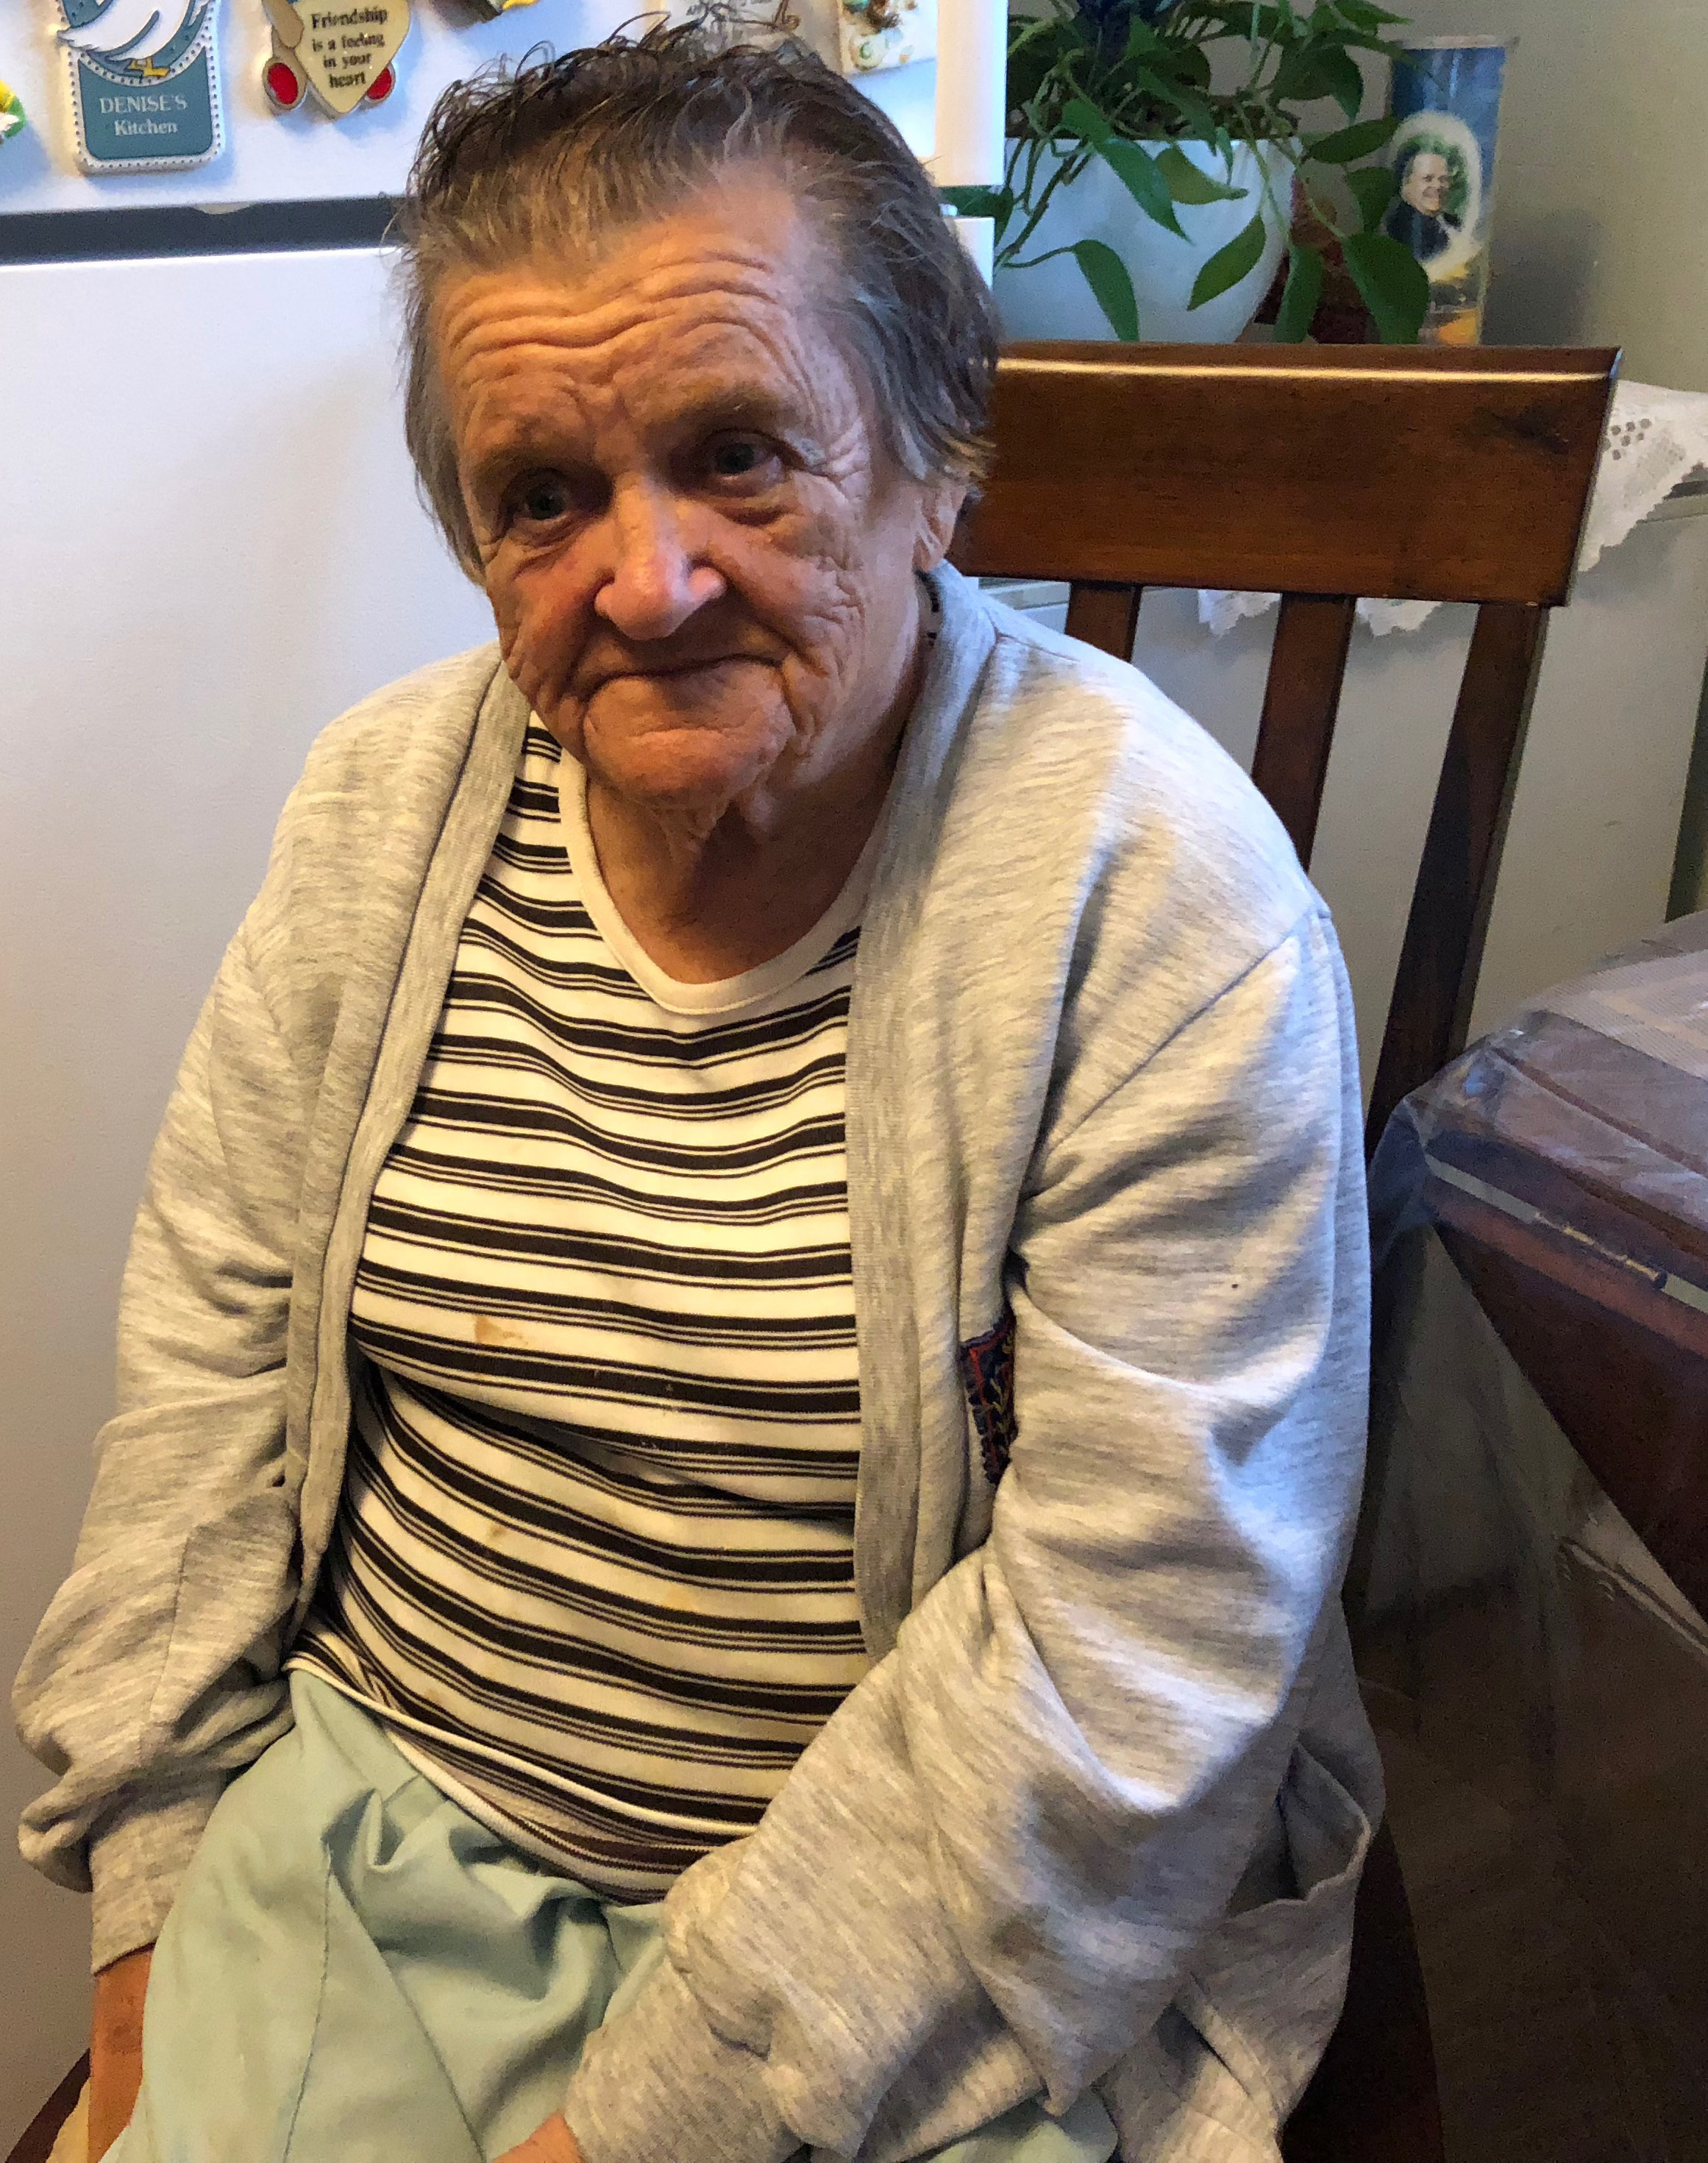 82-year old Esther Laviolette lived in Heritage park for 22 years and had hoped to live out the rest of her years there. (Laura Meader/CBC)